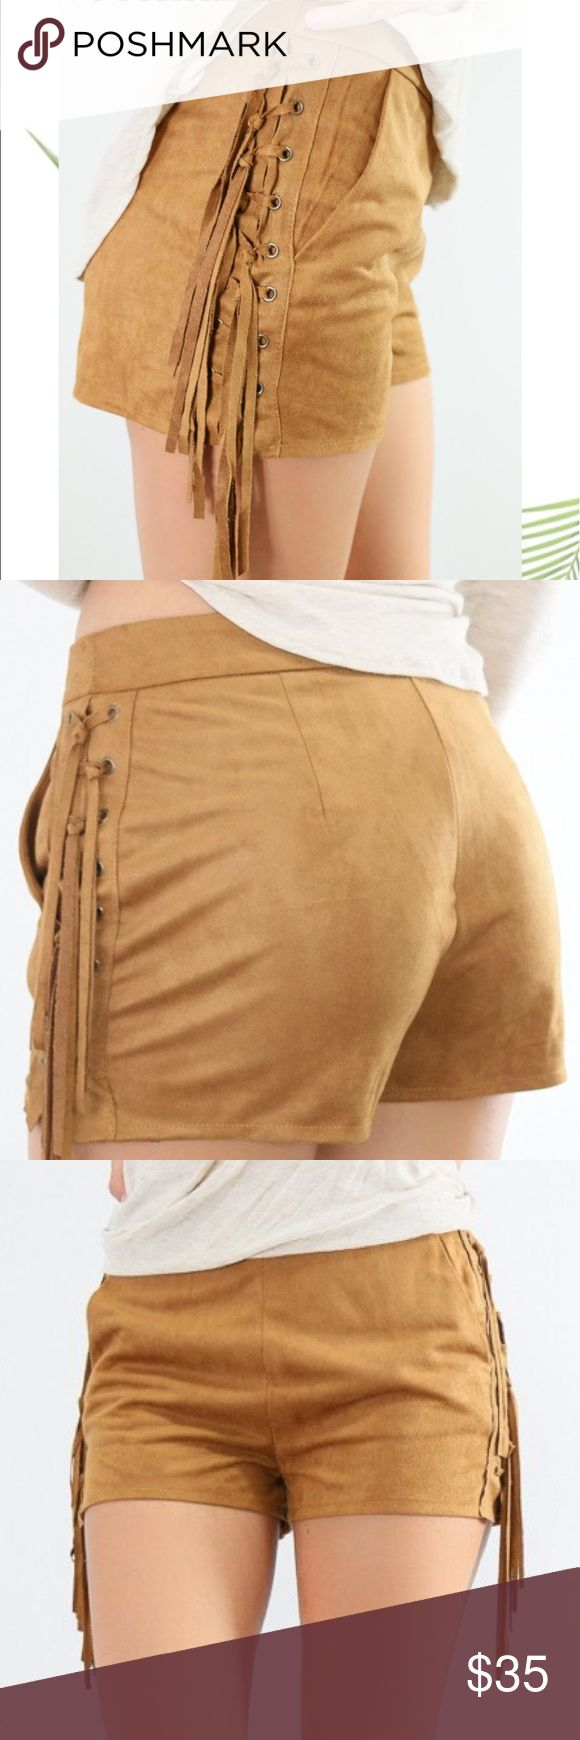 Shorts Desert palm suede camel zip up shorts with braided side fringe. Bought new couldn't return .. Pictures from Amazing Lace. Shorts